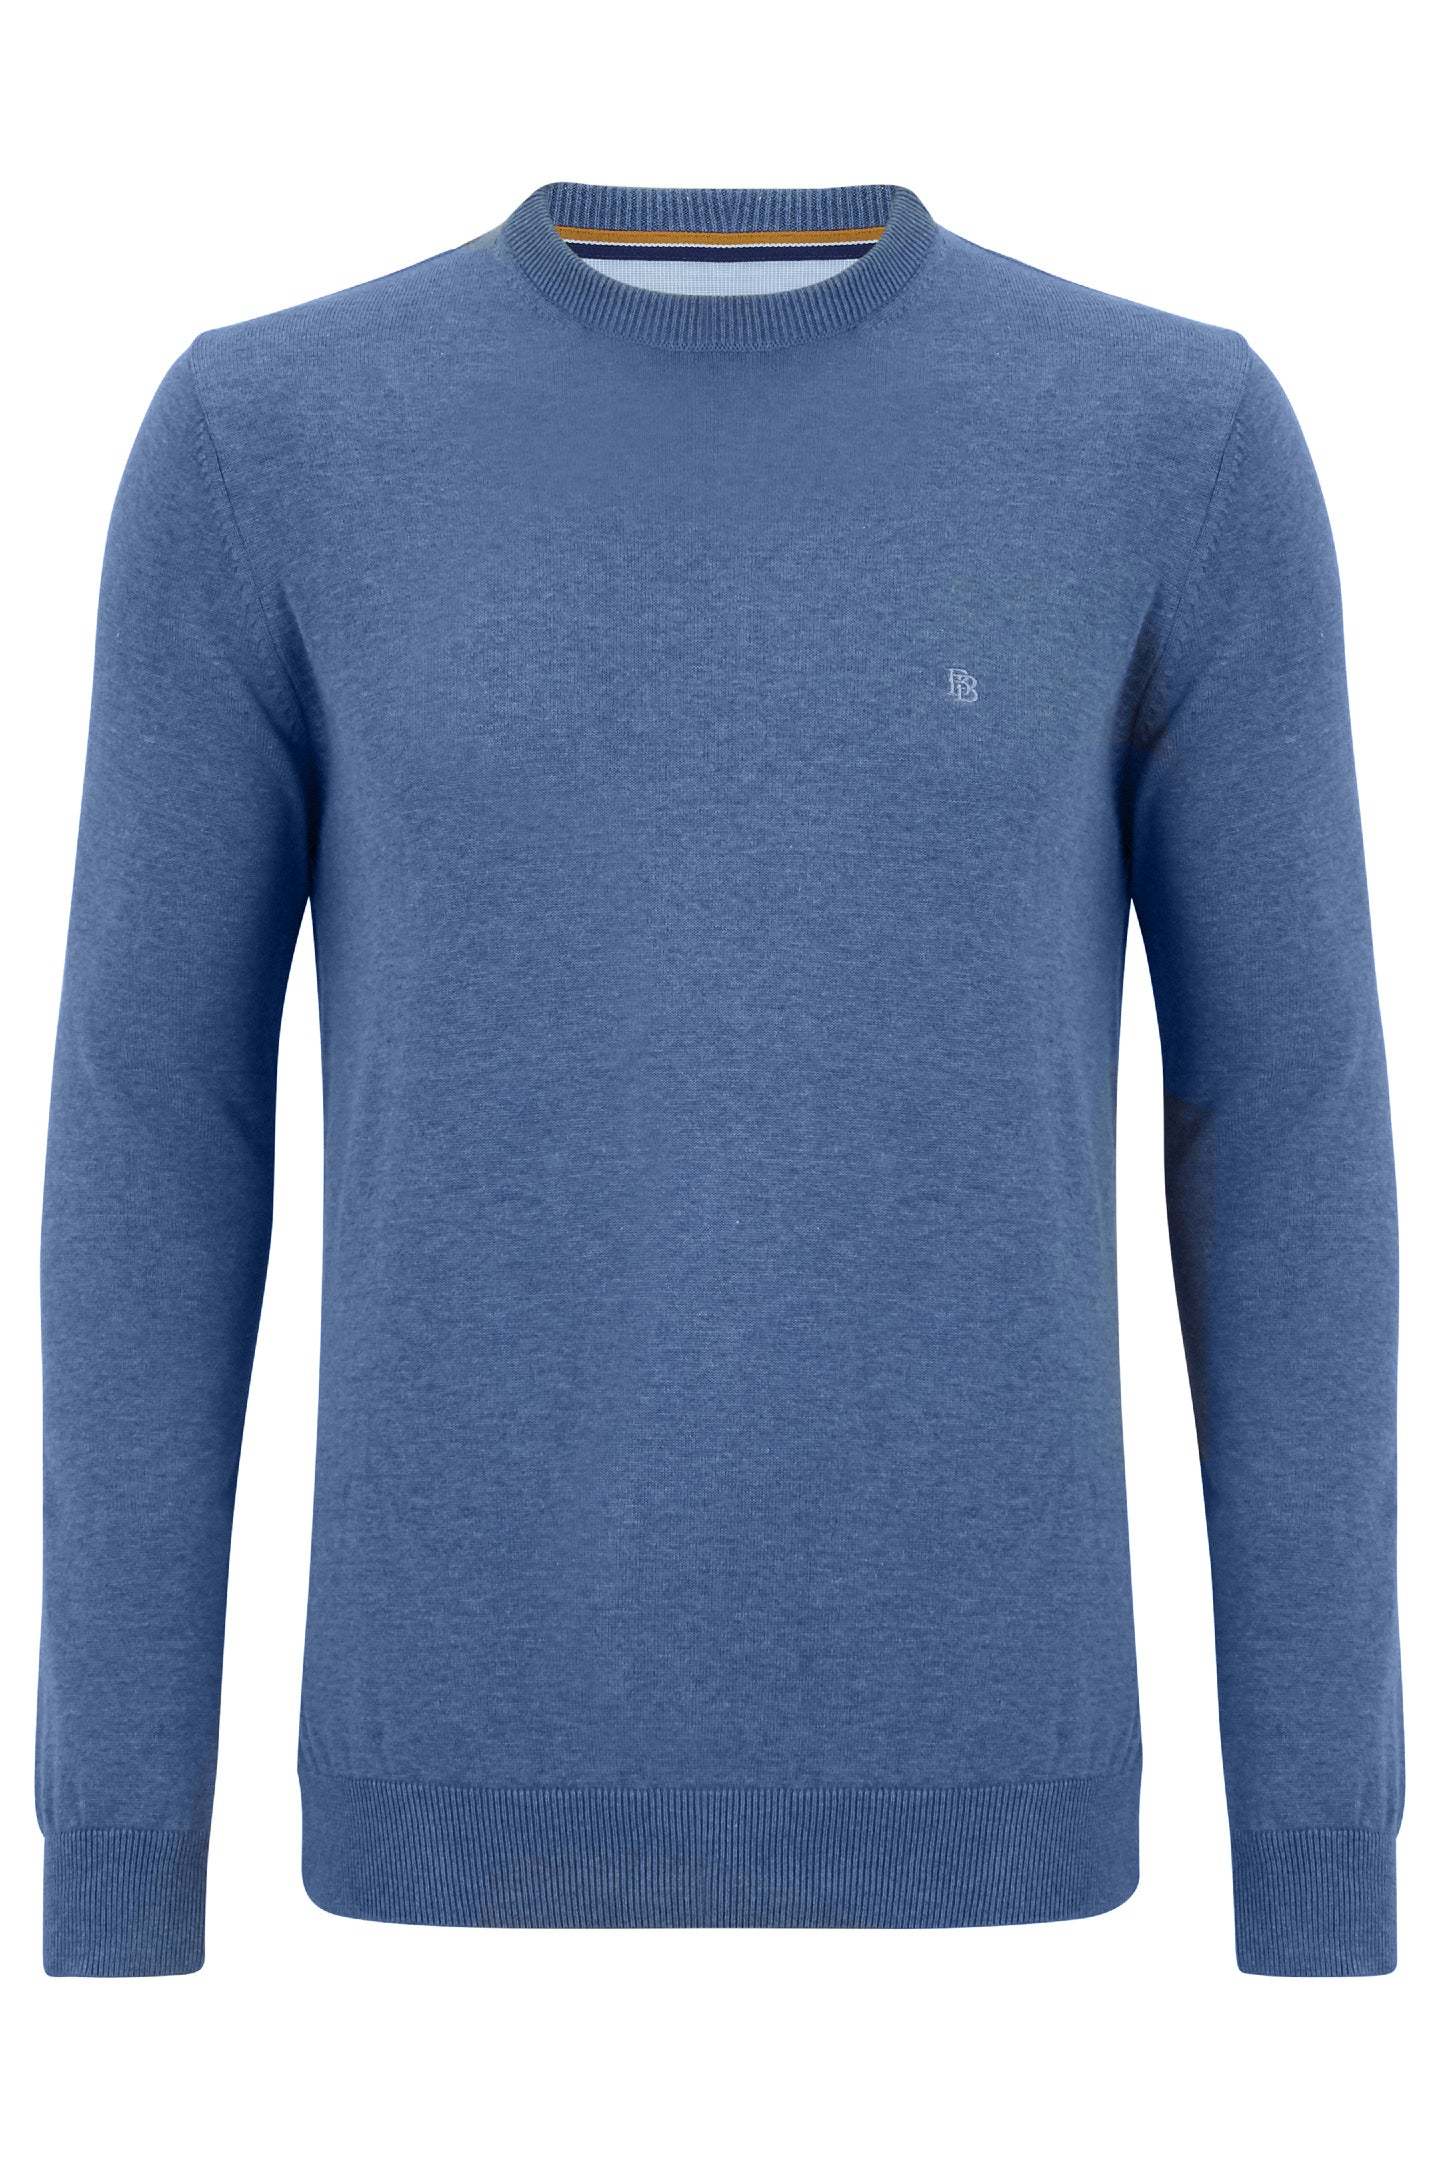 CREW NECK SWEATER | OCEAN